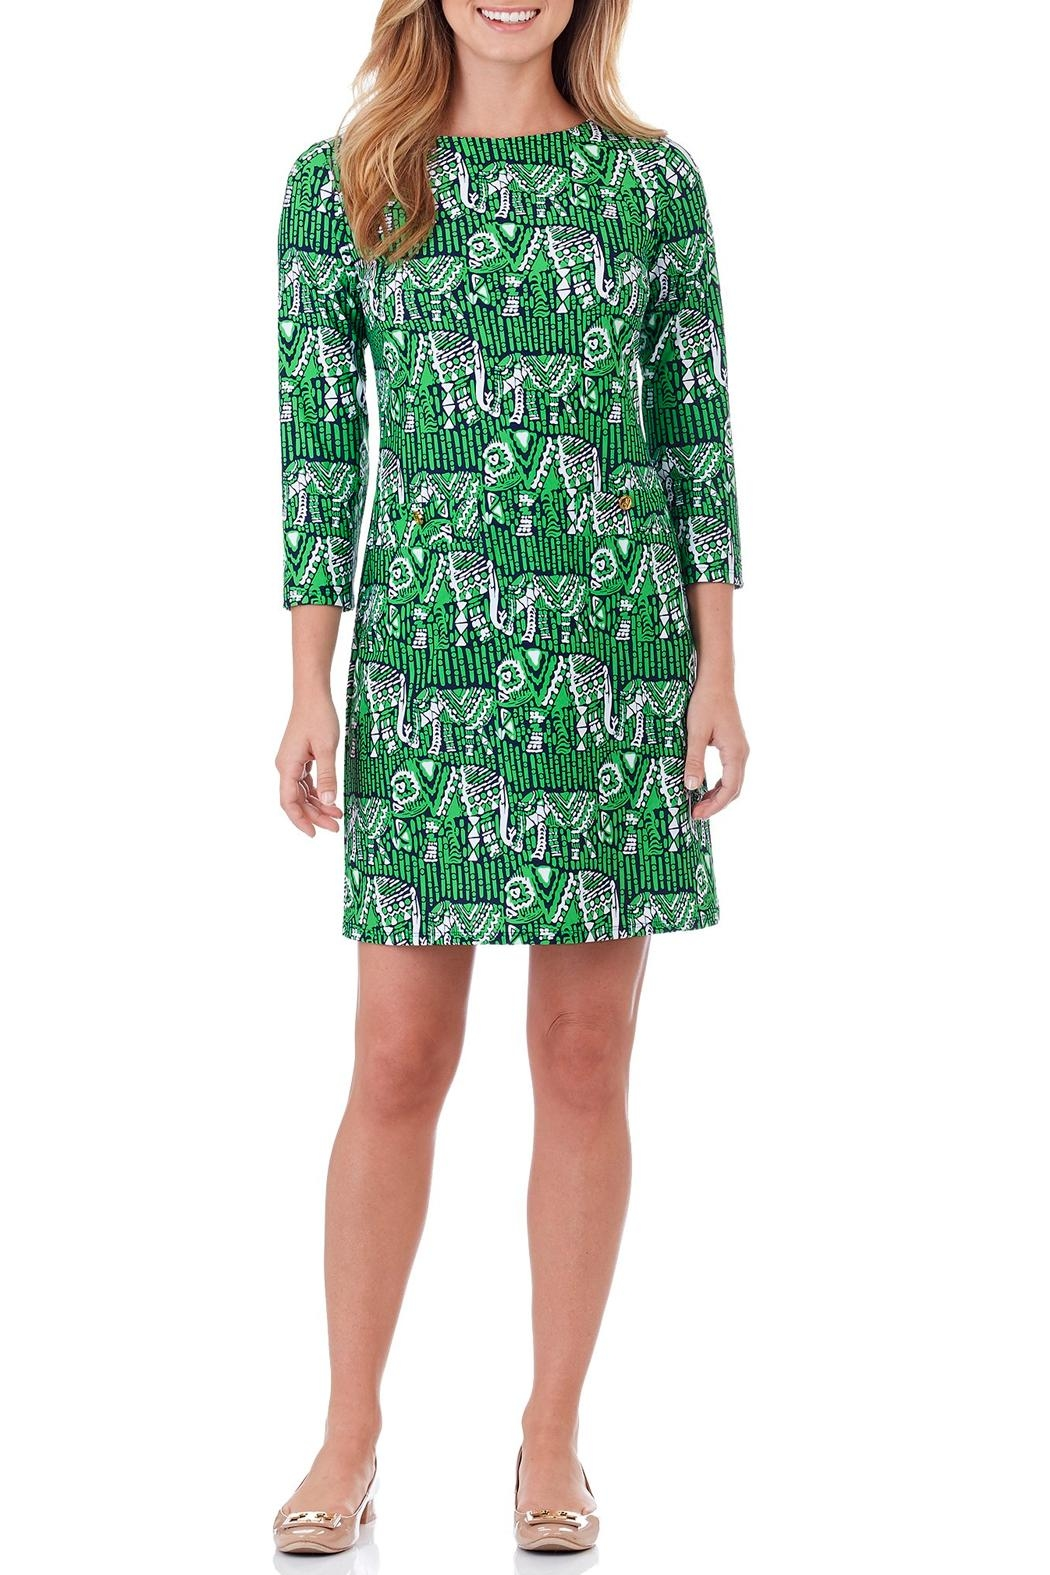 Jude Connally Sabine Shift Dress - Front Cropped Image